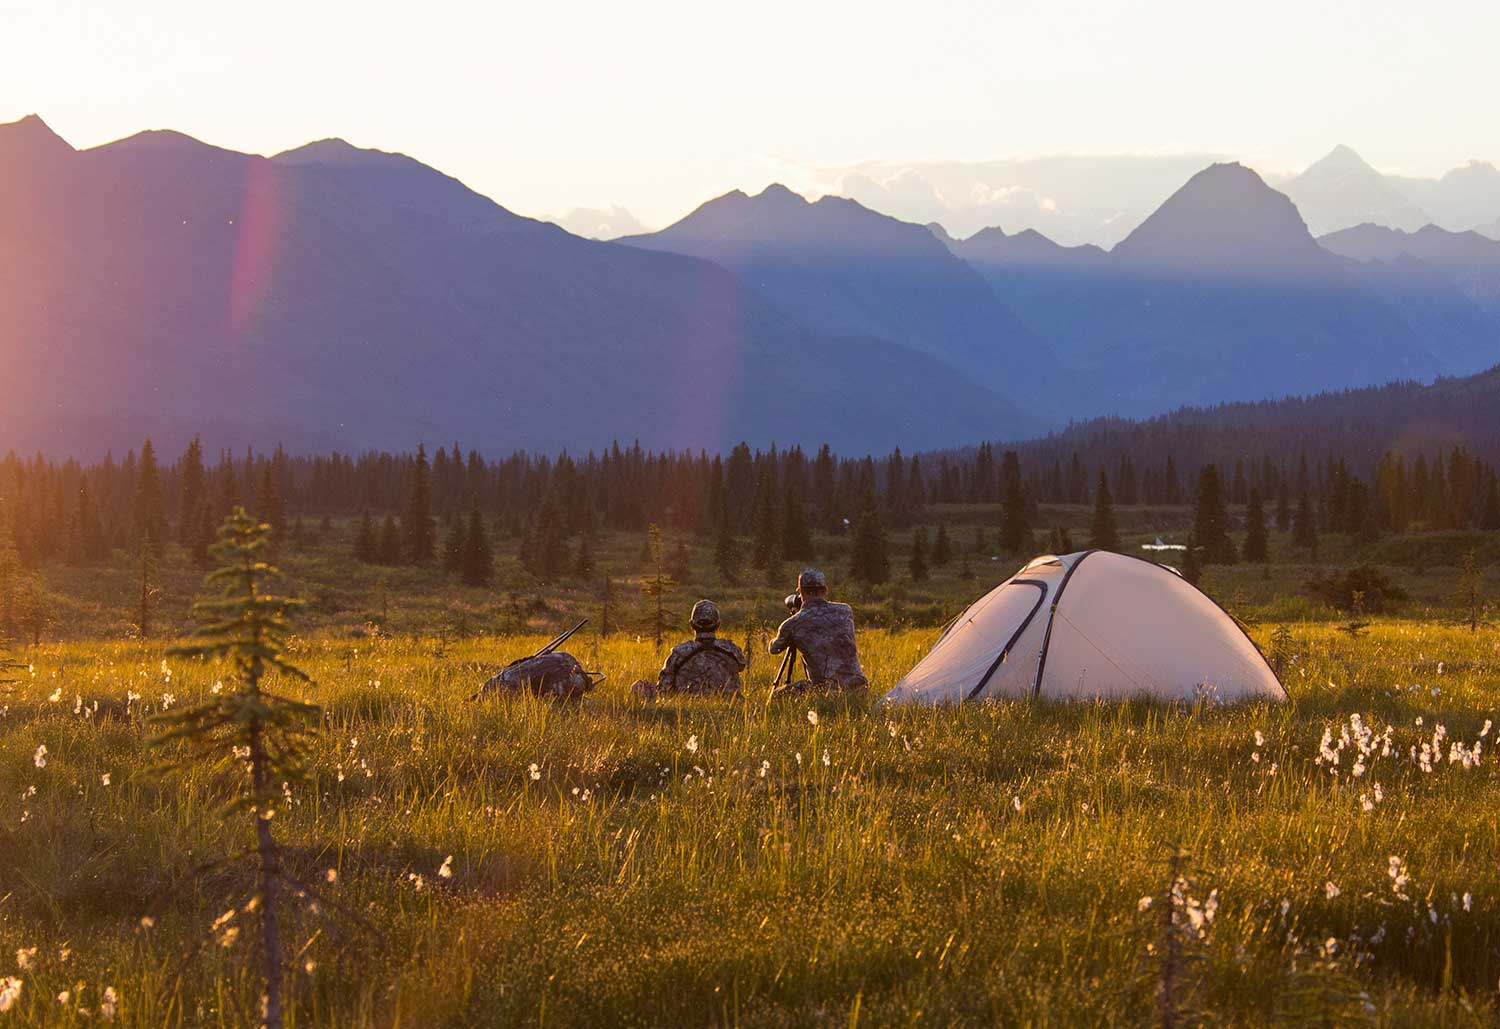 fly-fishermen-with-tent-in-mountains-at-sunset